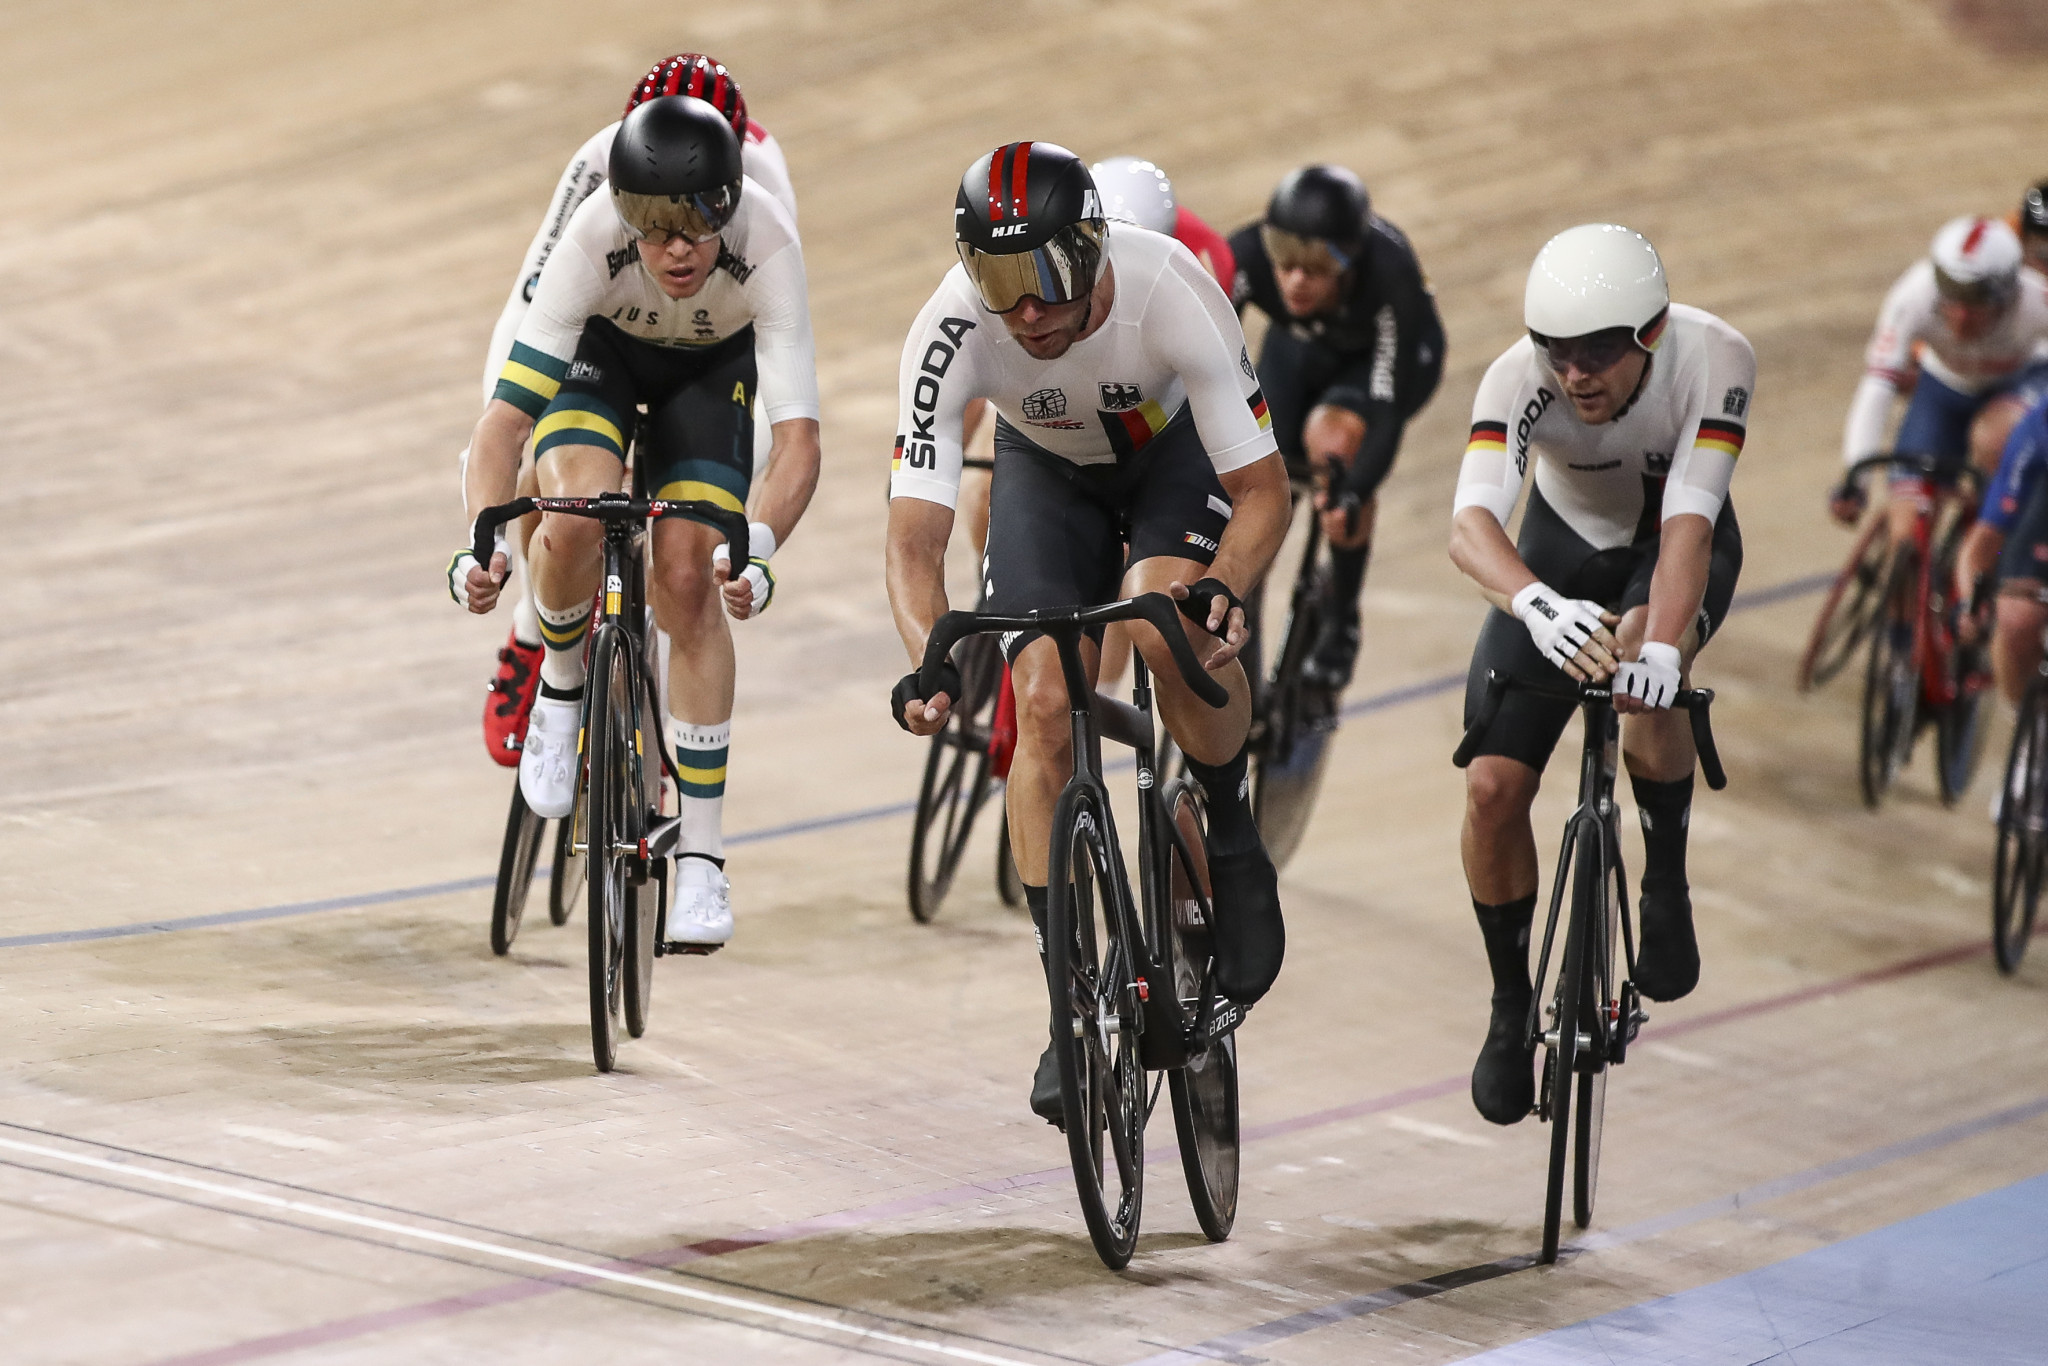 The partnership was announced during the UCI Track Cycling World Championships in Berlin ©Getty Images